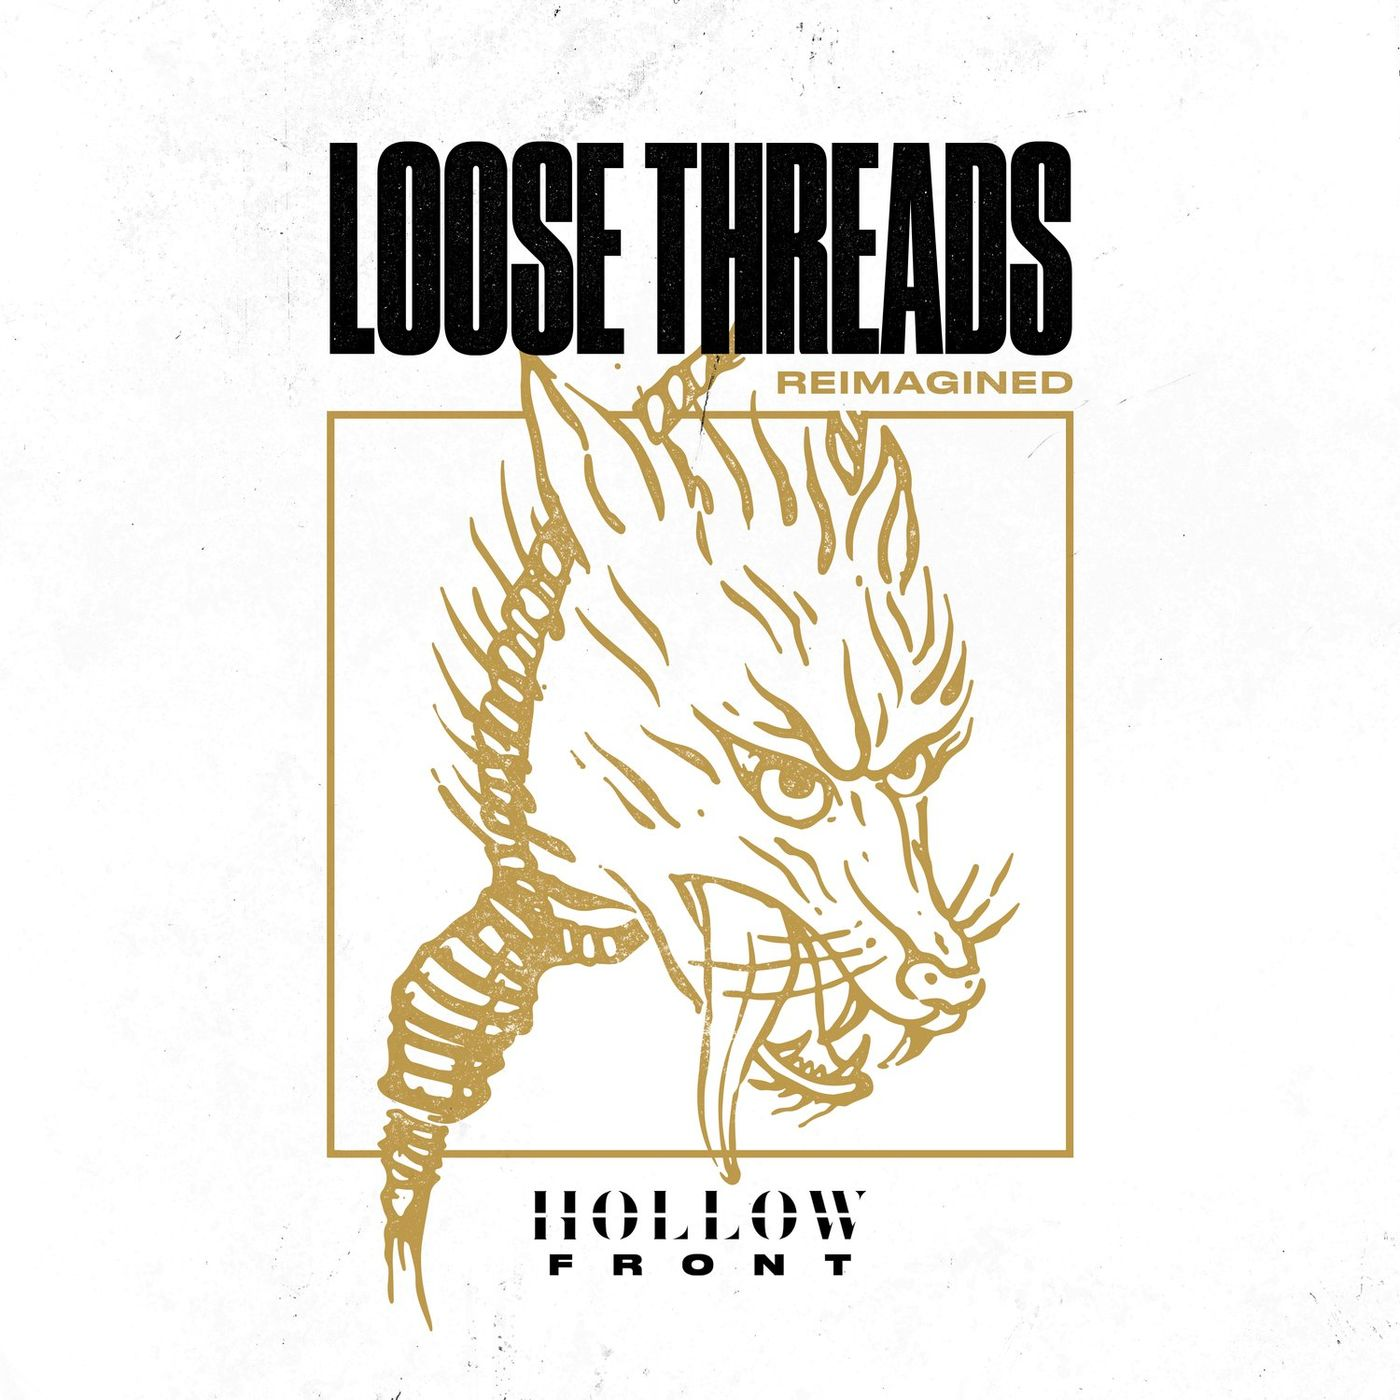 Hollow Front - Loose Threads (Reimagined) [single] (2021)